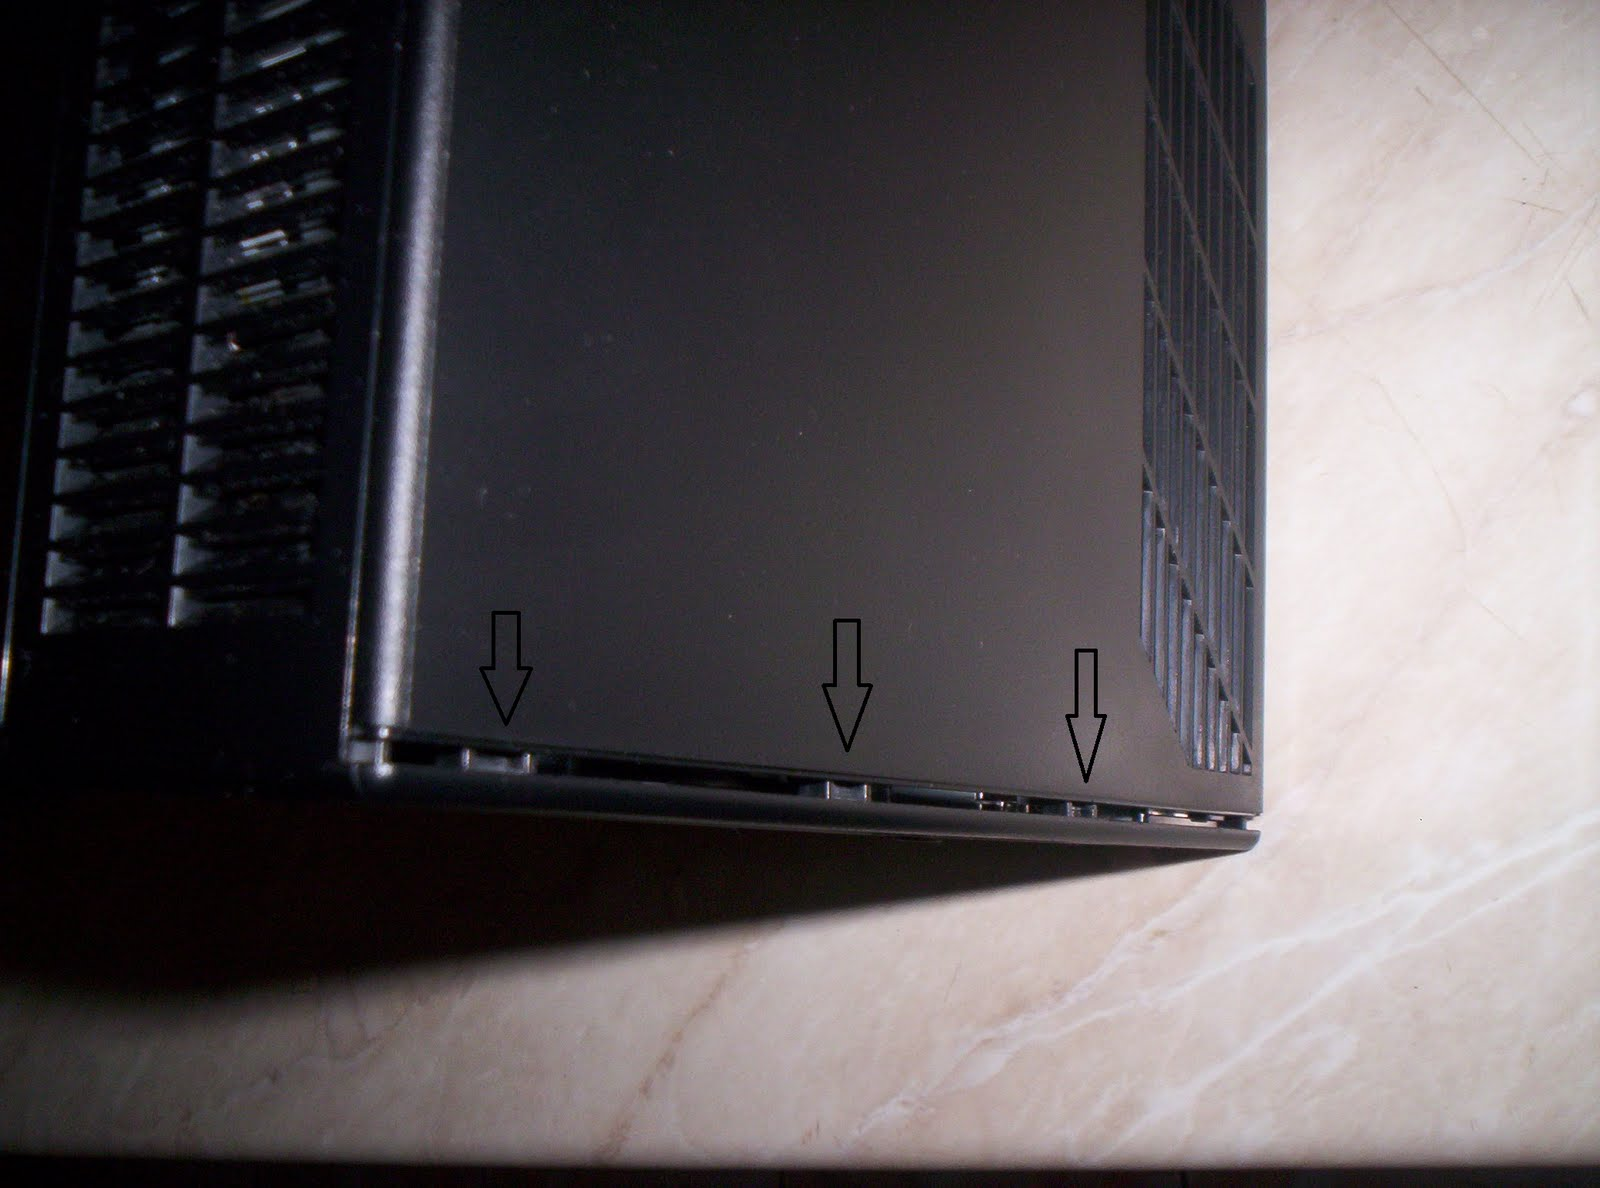 Cracking Seagate Black Armor NAS 110: Opening the box